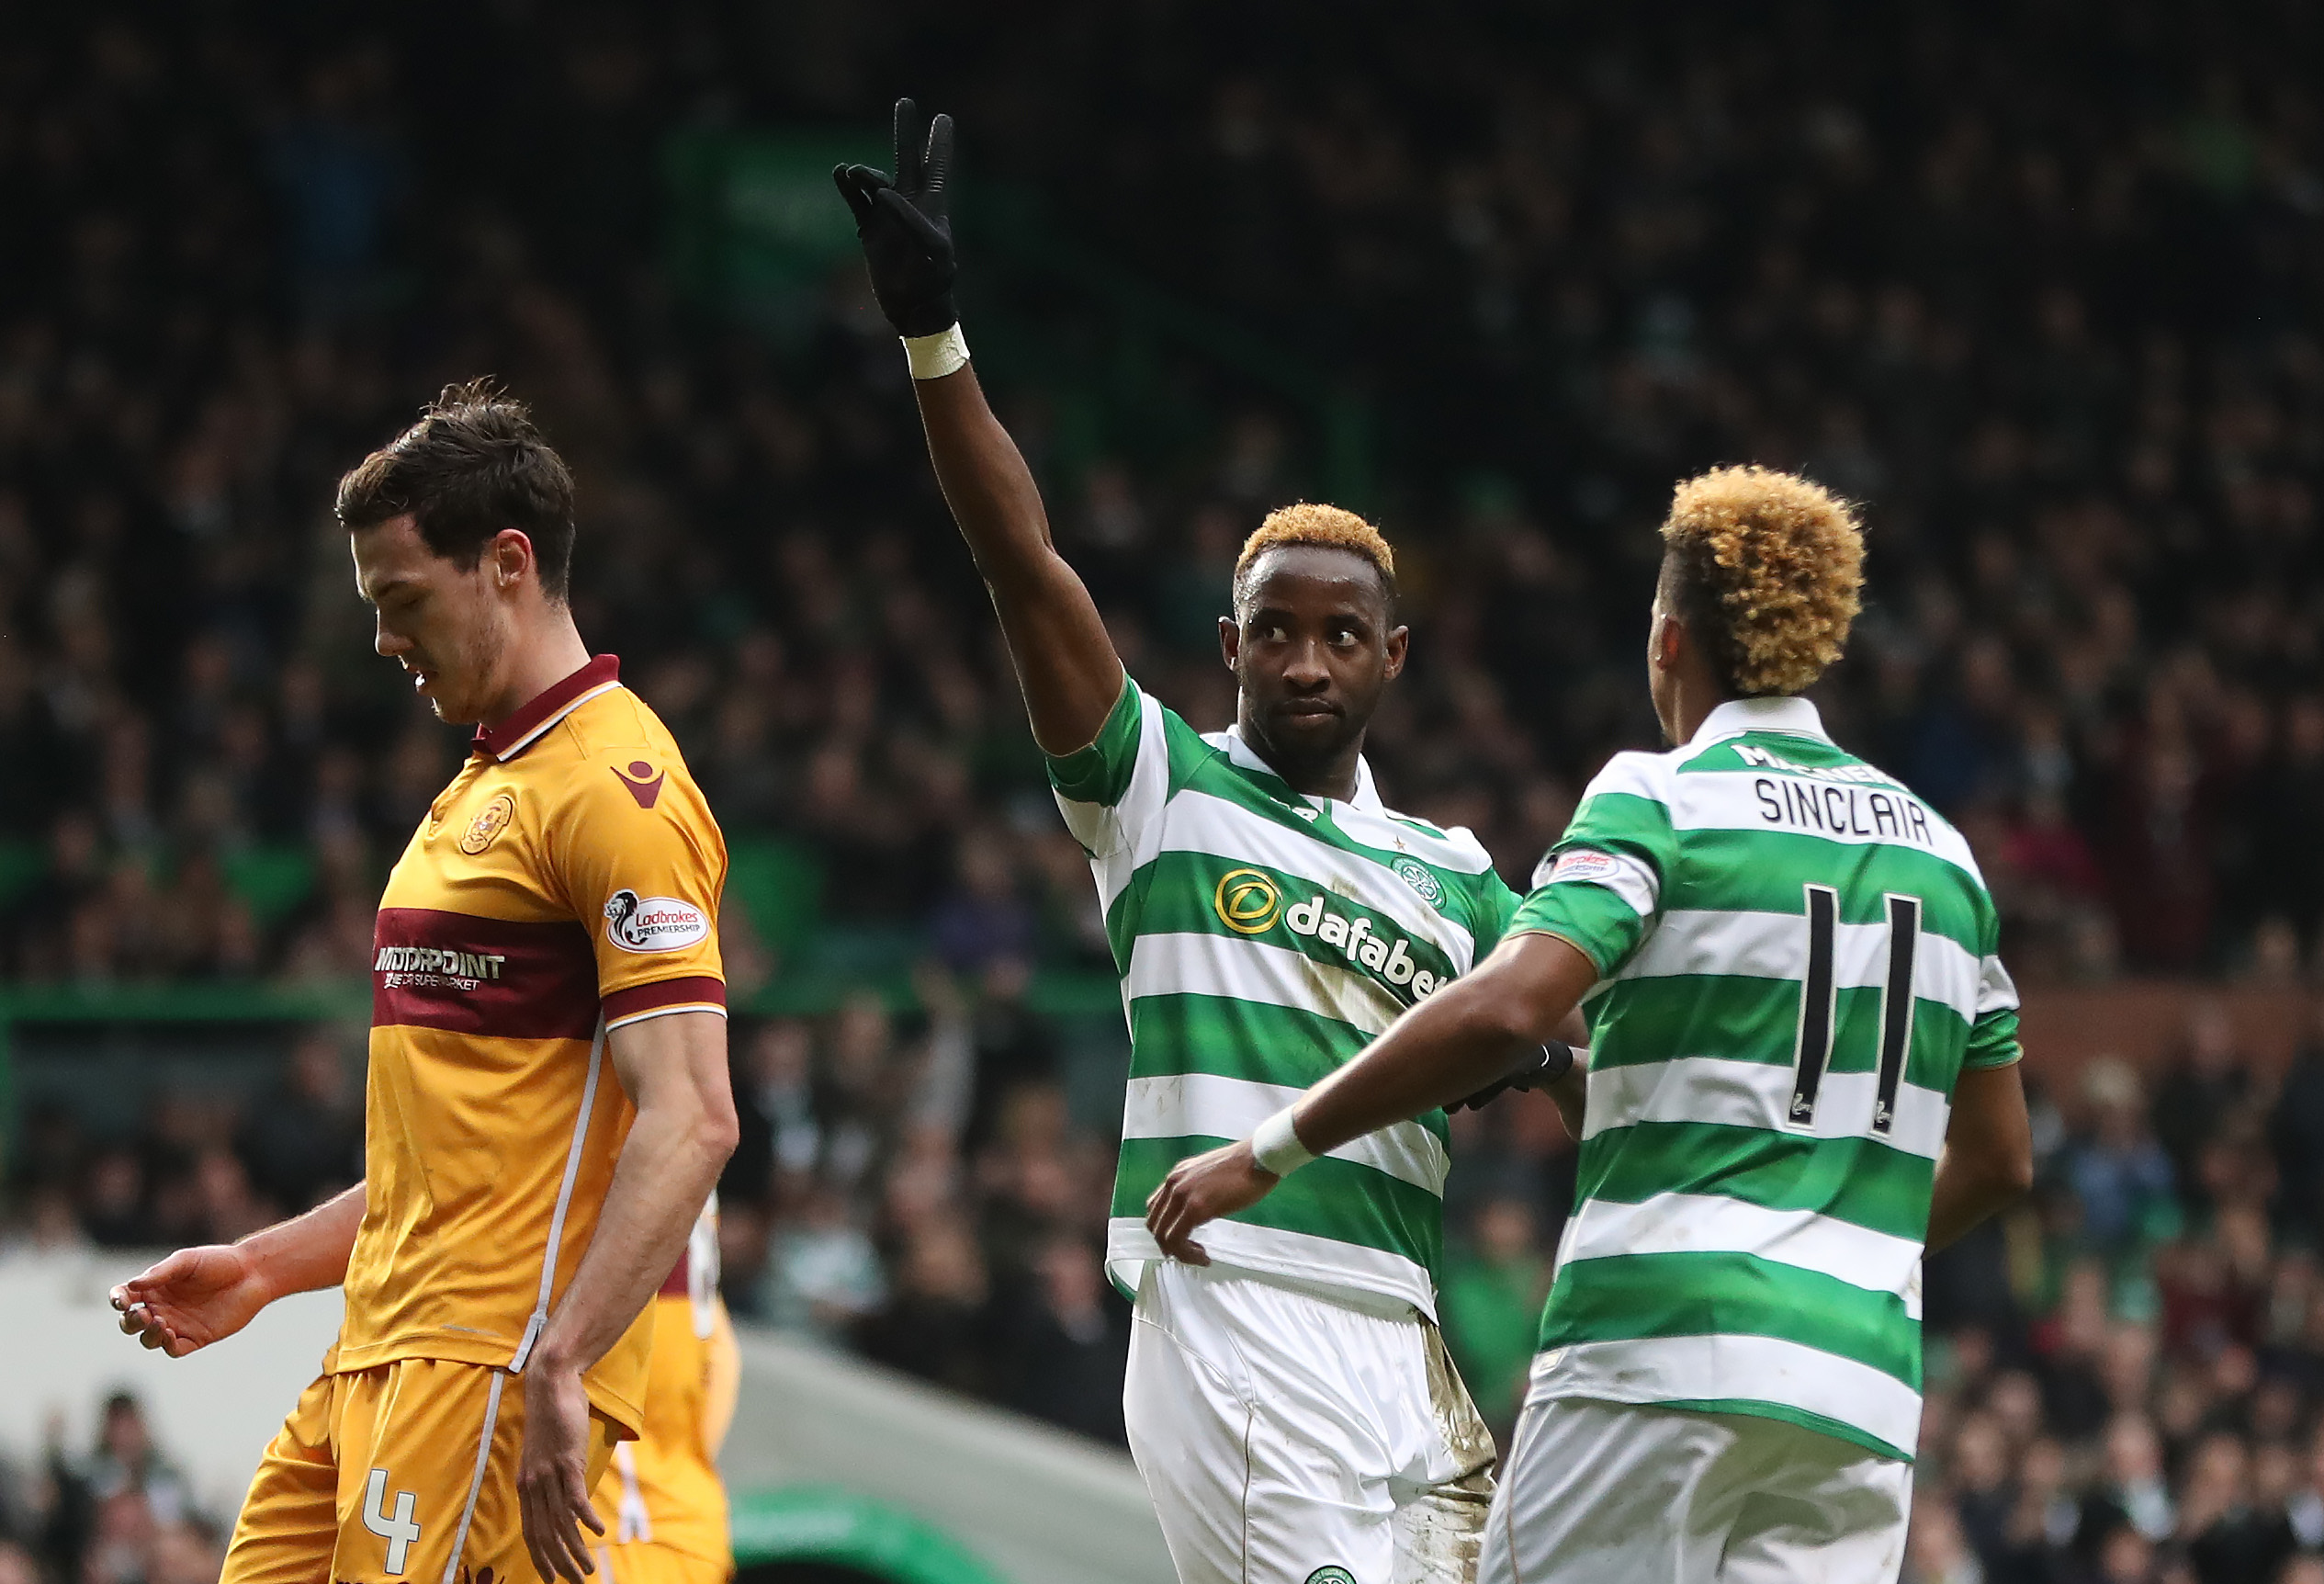 Dundee v Celtic TV channel, kick-off time, odds and head-to-head